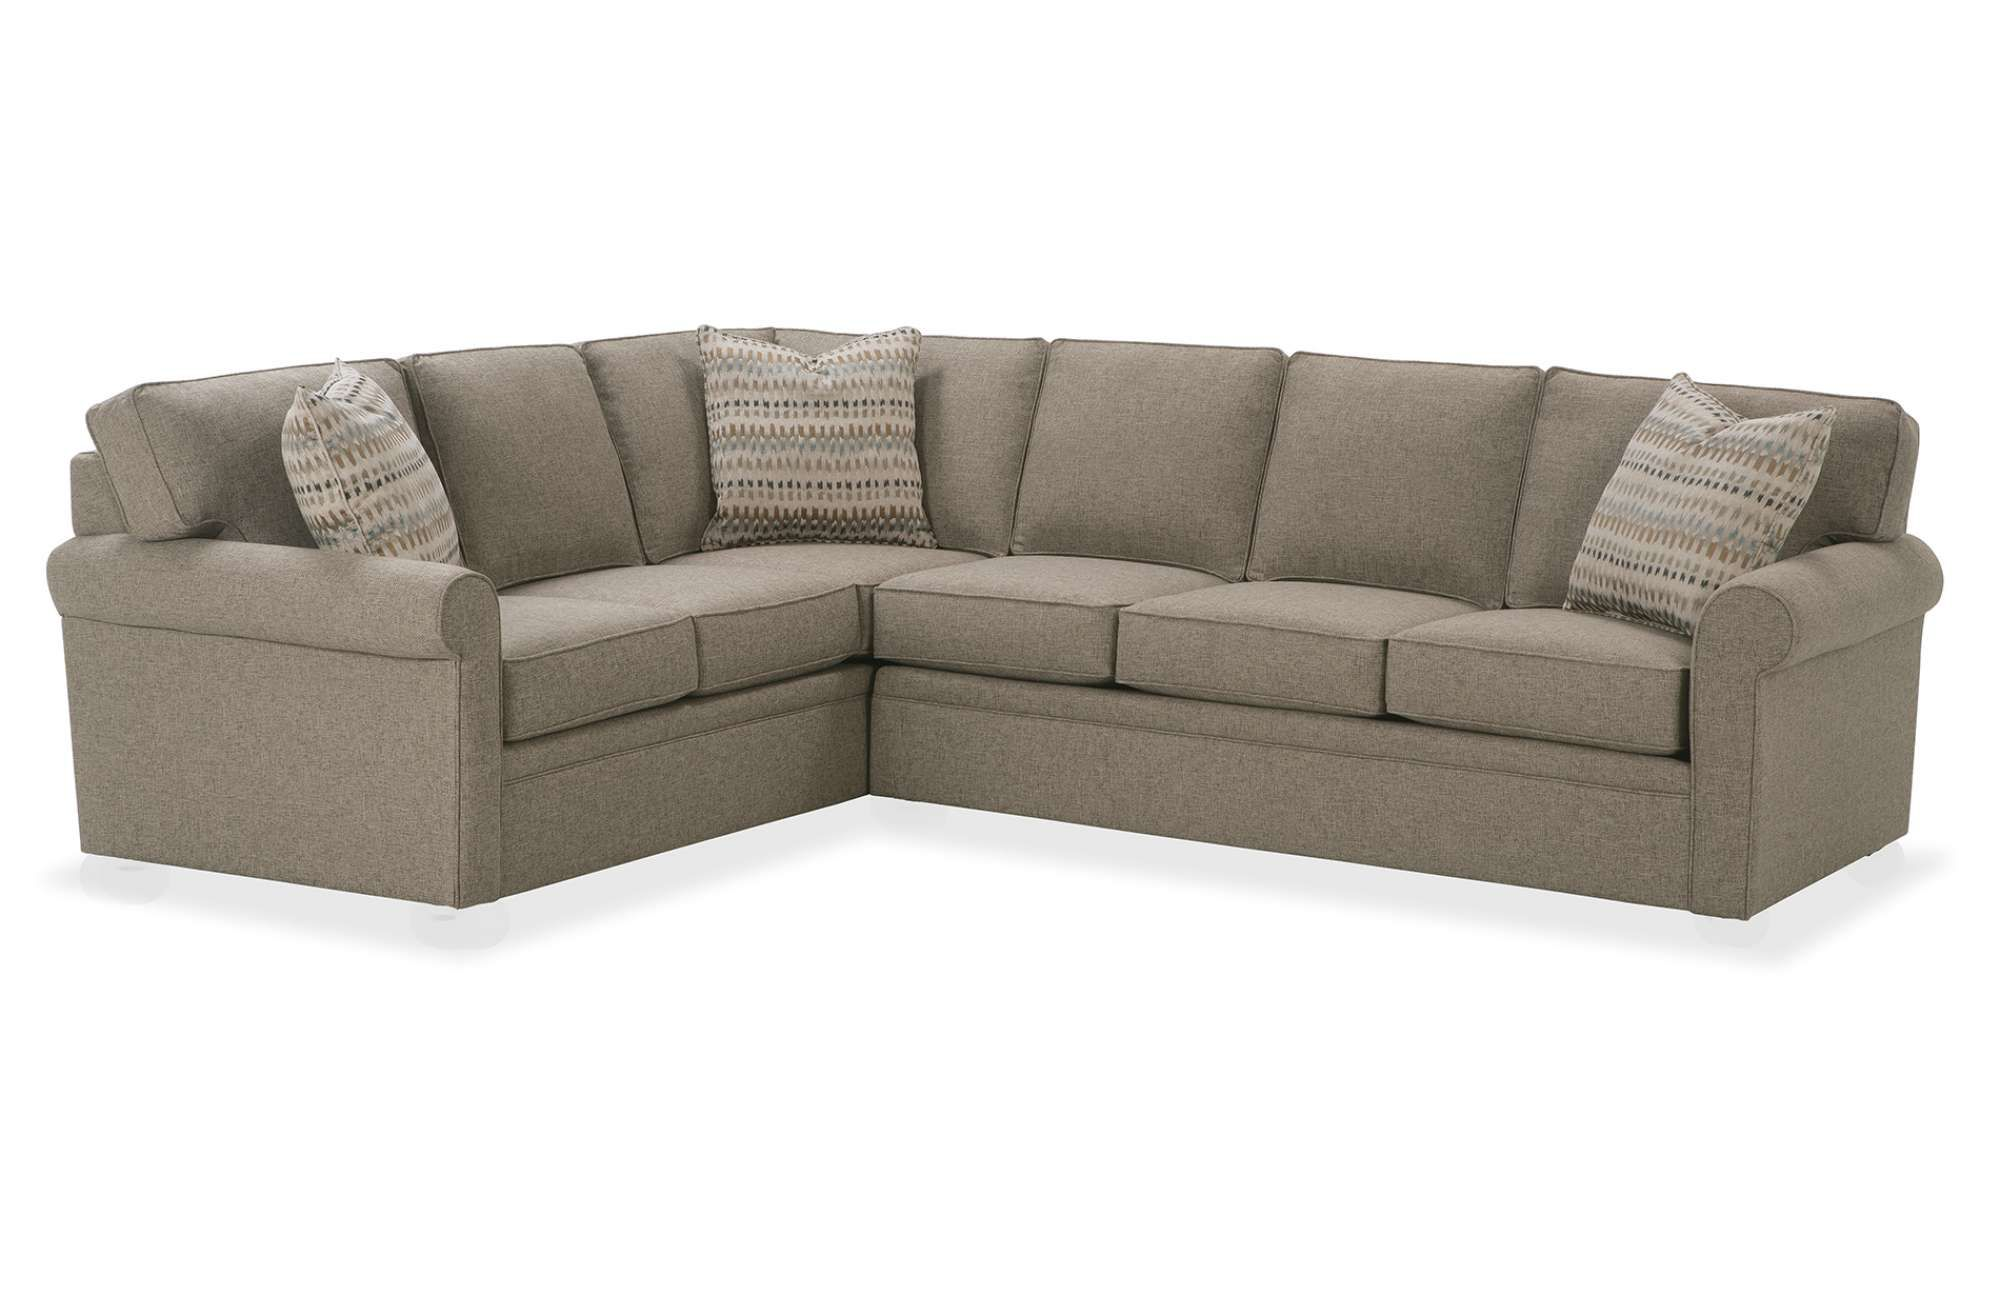 The Brentwood Sectional From Rowe Furniture Would Be A Welcome Addition To  Any Home. Customize